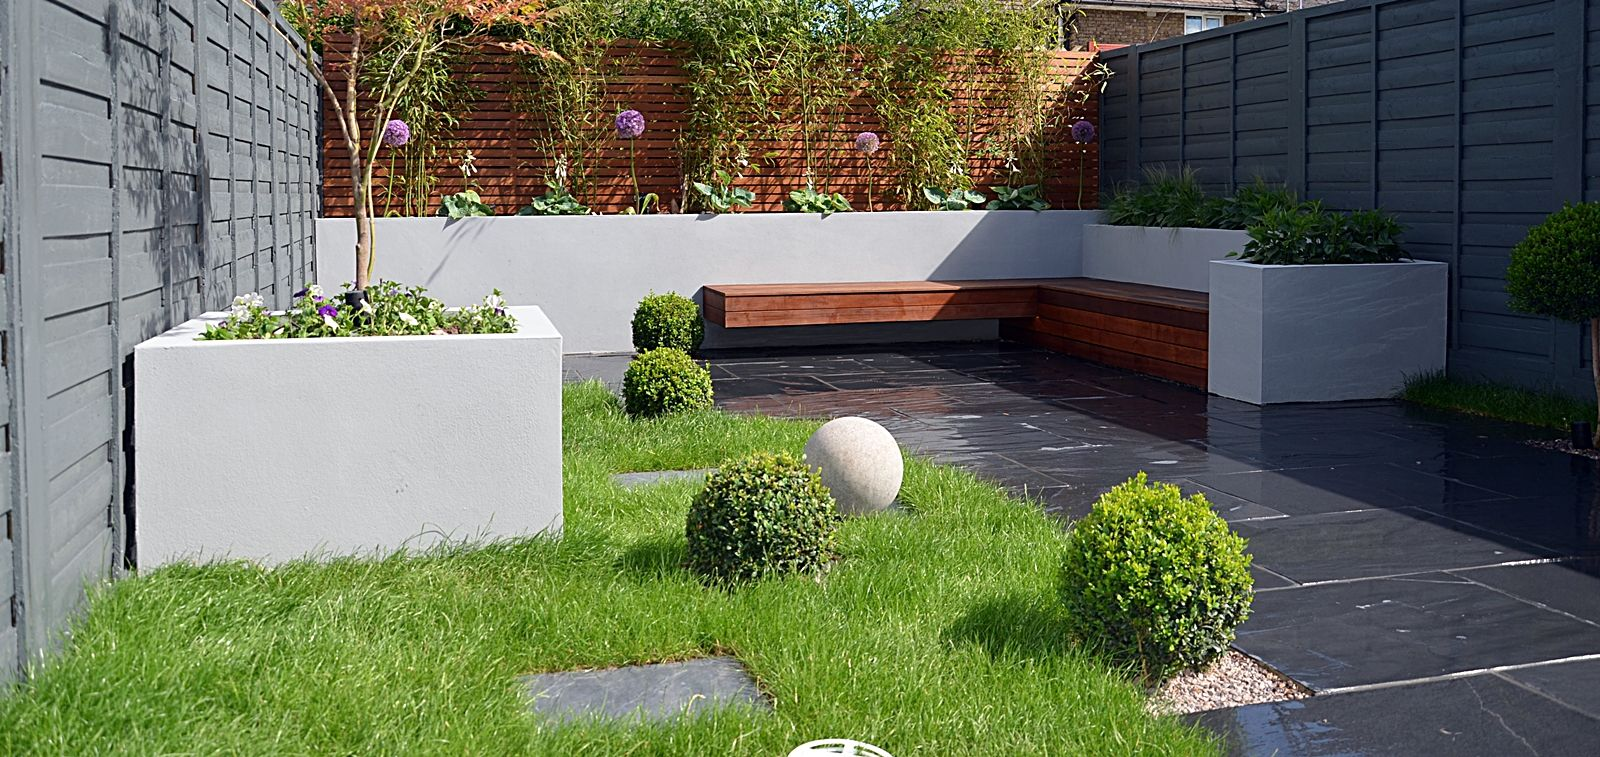 Garden Designers London Painting Mesmerizing Rendered Block Walls Slate Paving Designer Lawn Modern Planting . Design Decoration